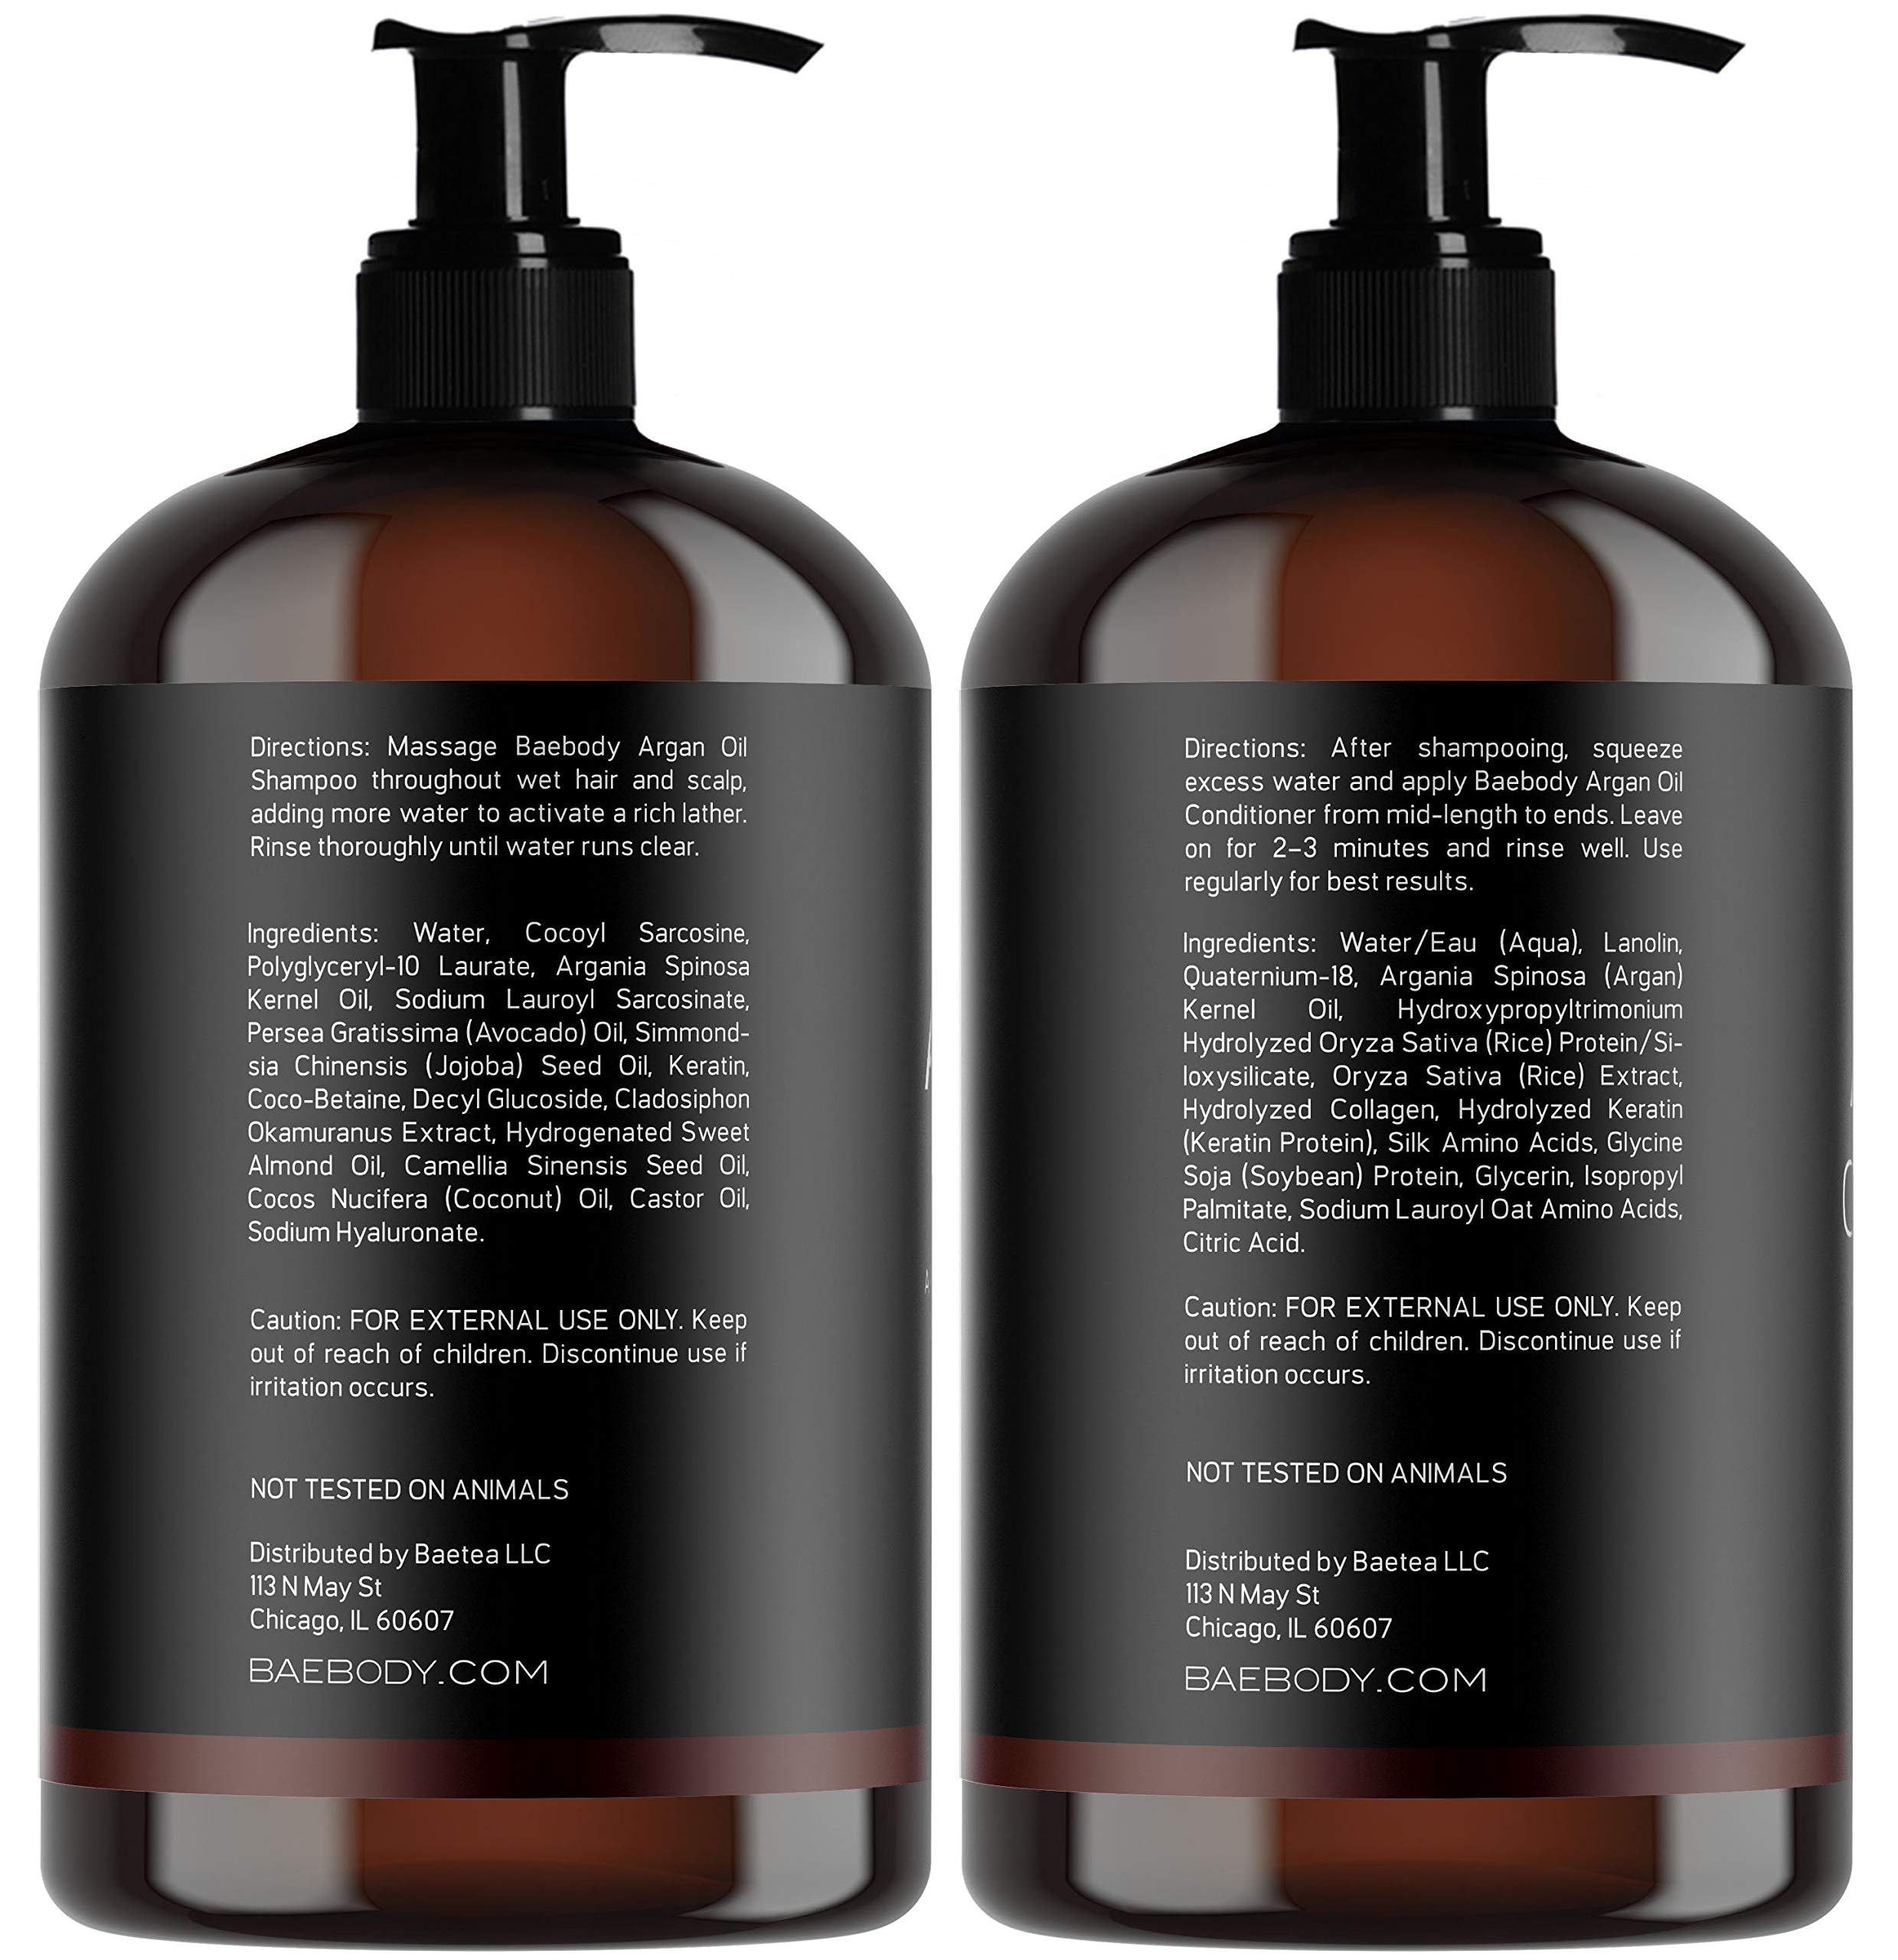 Baebody Moroccan Argan Oil Shampoo & Conditioner Set, 16 Ounces by Baebody